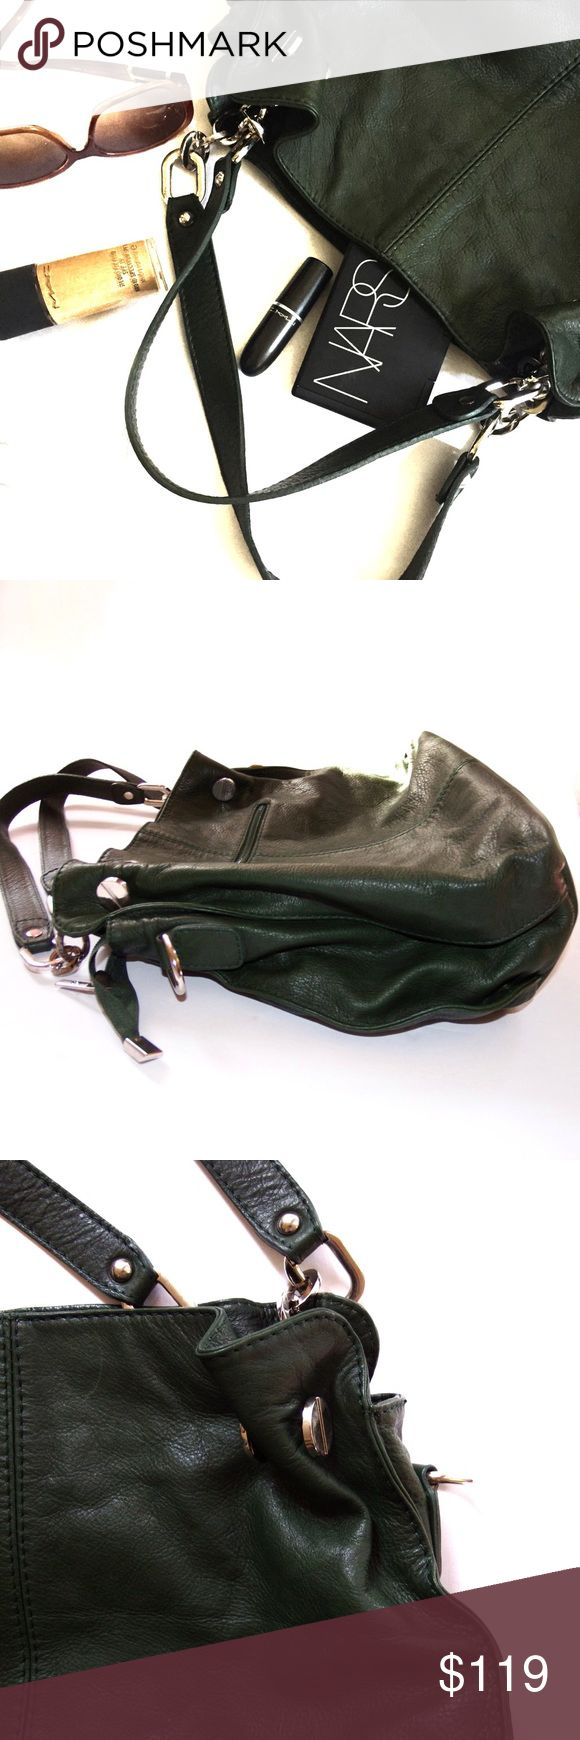 """Borse in Pelle Green Italian Leather Satchel Purse Emerald Green. Soft and supple leather. Silver metal accents. Handcrafted in Italy? Yes Please! Grab this bag for a night out for St. Patty's or to go to the office. Borse in Pelle ( which literally translates to """"Leather Handbags"""" ) is a luxury Italian brand.   Details:  * Buttery soft.  * Silver metal accents.  * Zipper compartment in & out. * The top of the bag zips closed. * Missing the shoulder strap * Only used a handful of times…"""